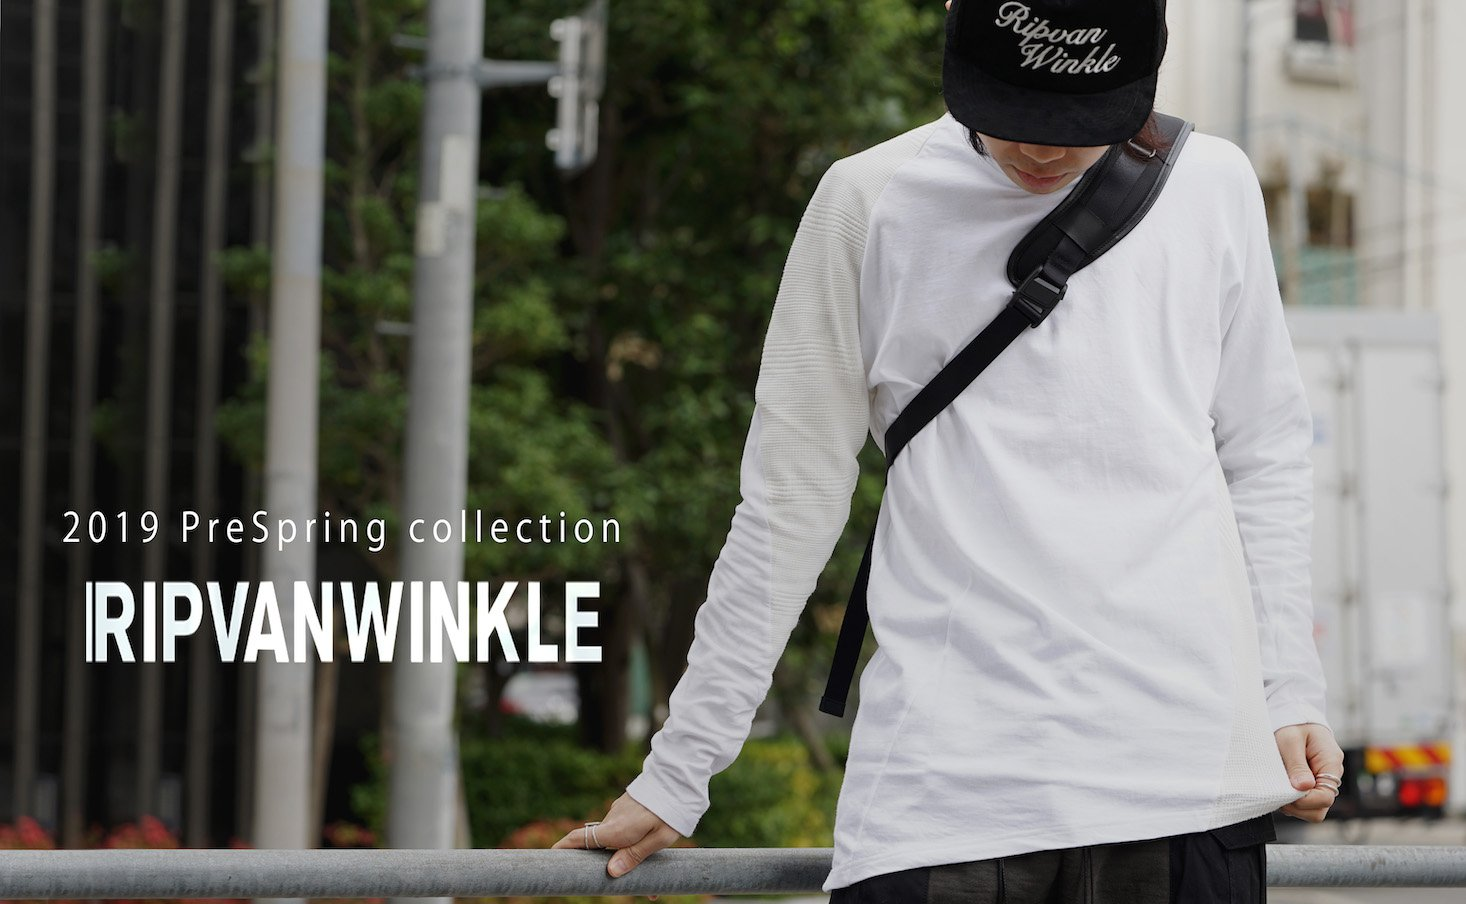 RIPVANWINKLE 19 Pre spring collection